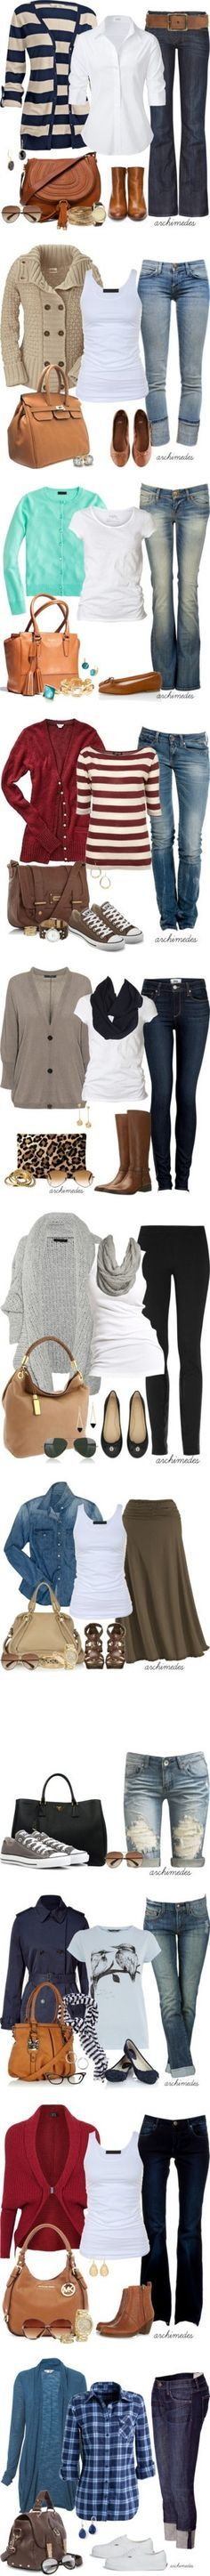 Comfy, casual and cute fall fashion by Enora.Chaigne